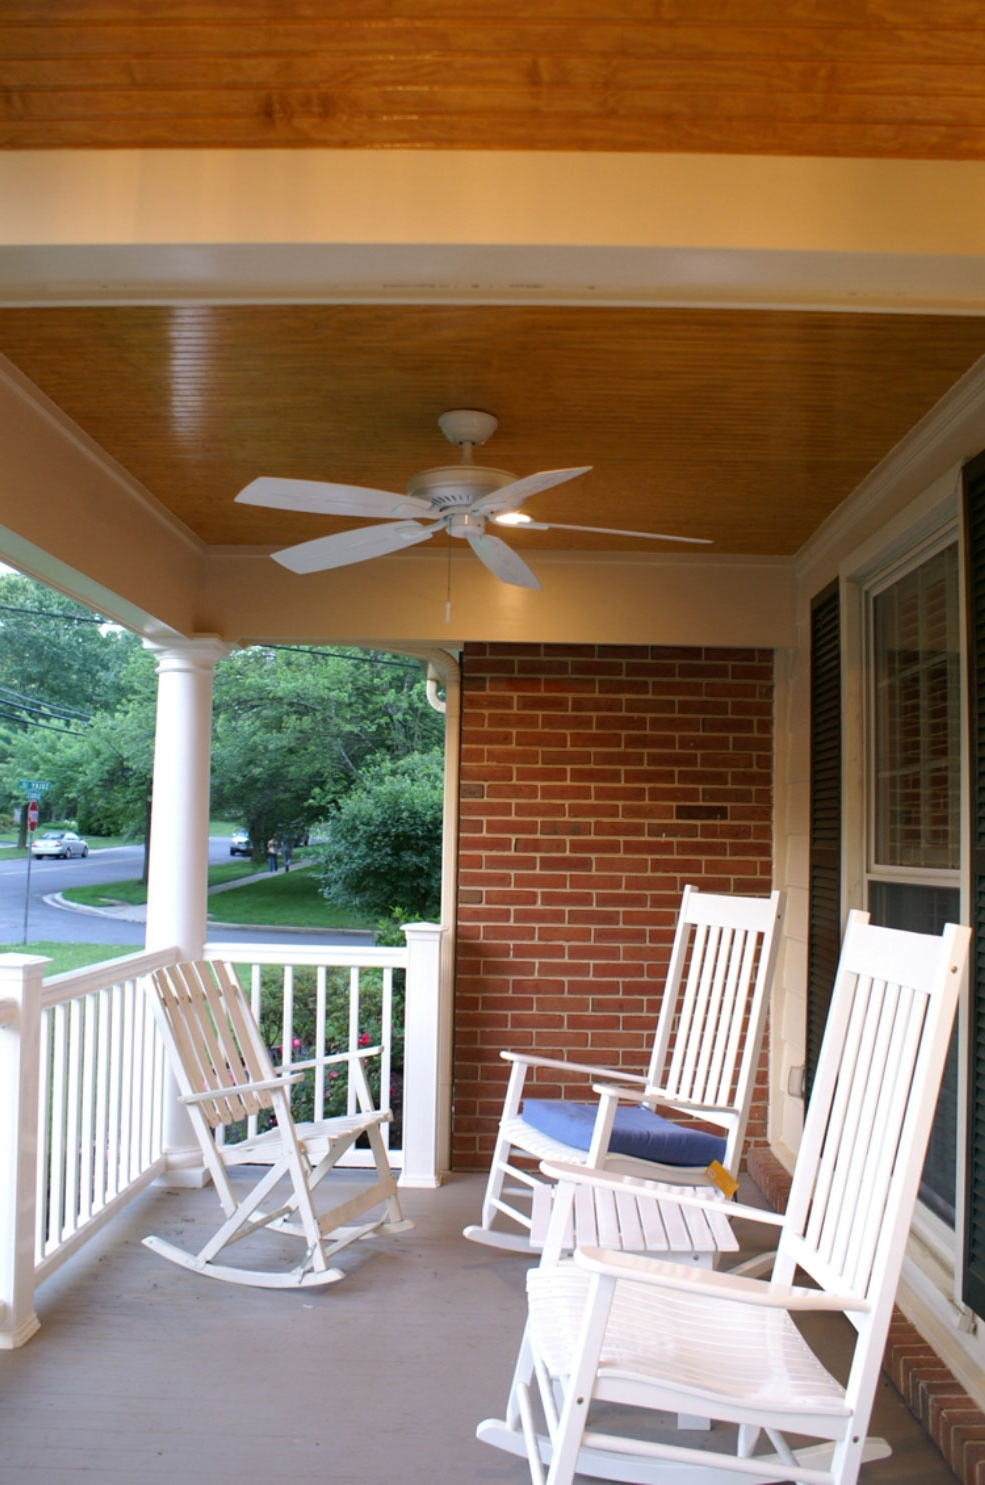 Widely Used Ceiling: Glamorous Outdoor Ceiling Fans Without Lights Lowes Ceiling With Regard To Outdoor Ceiling Fans For Porch (View 13 of 20)